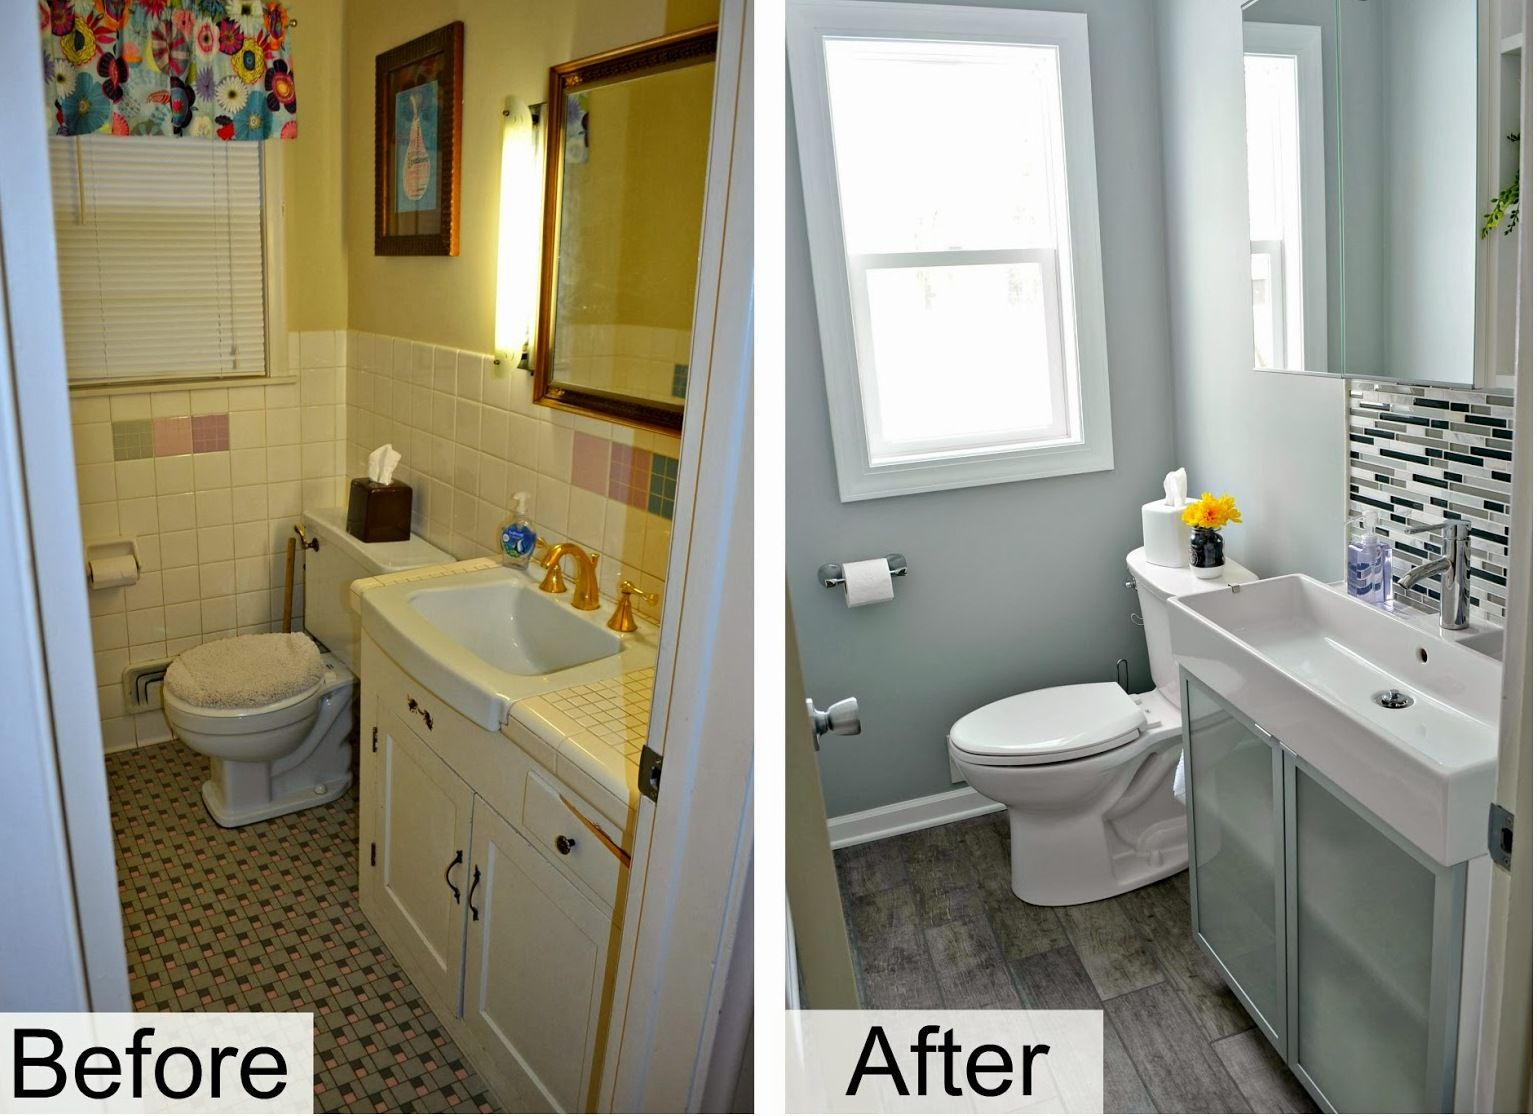 diy bathroom remodel ideas for average people | diy bathroom